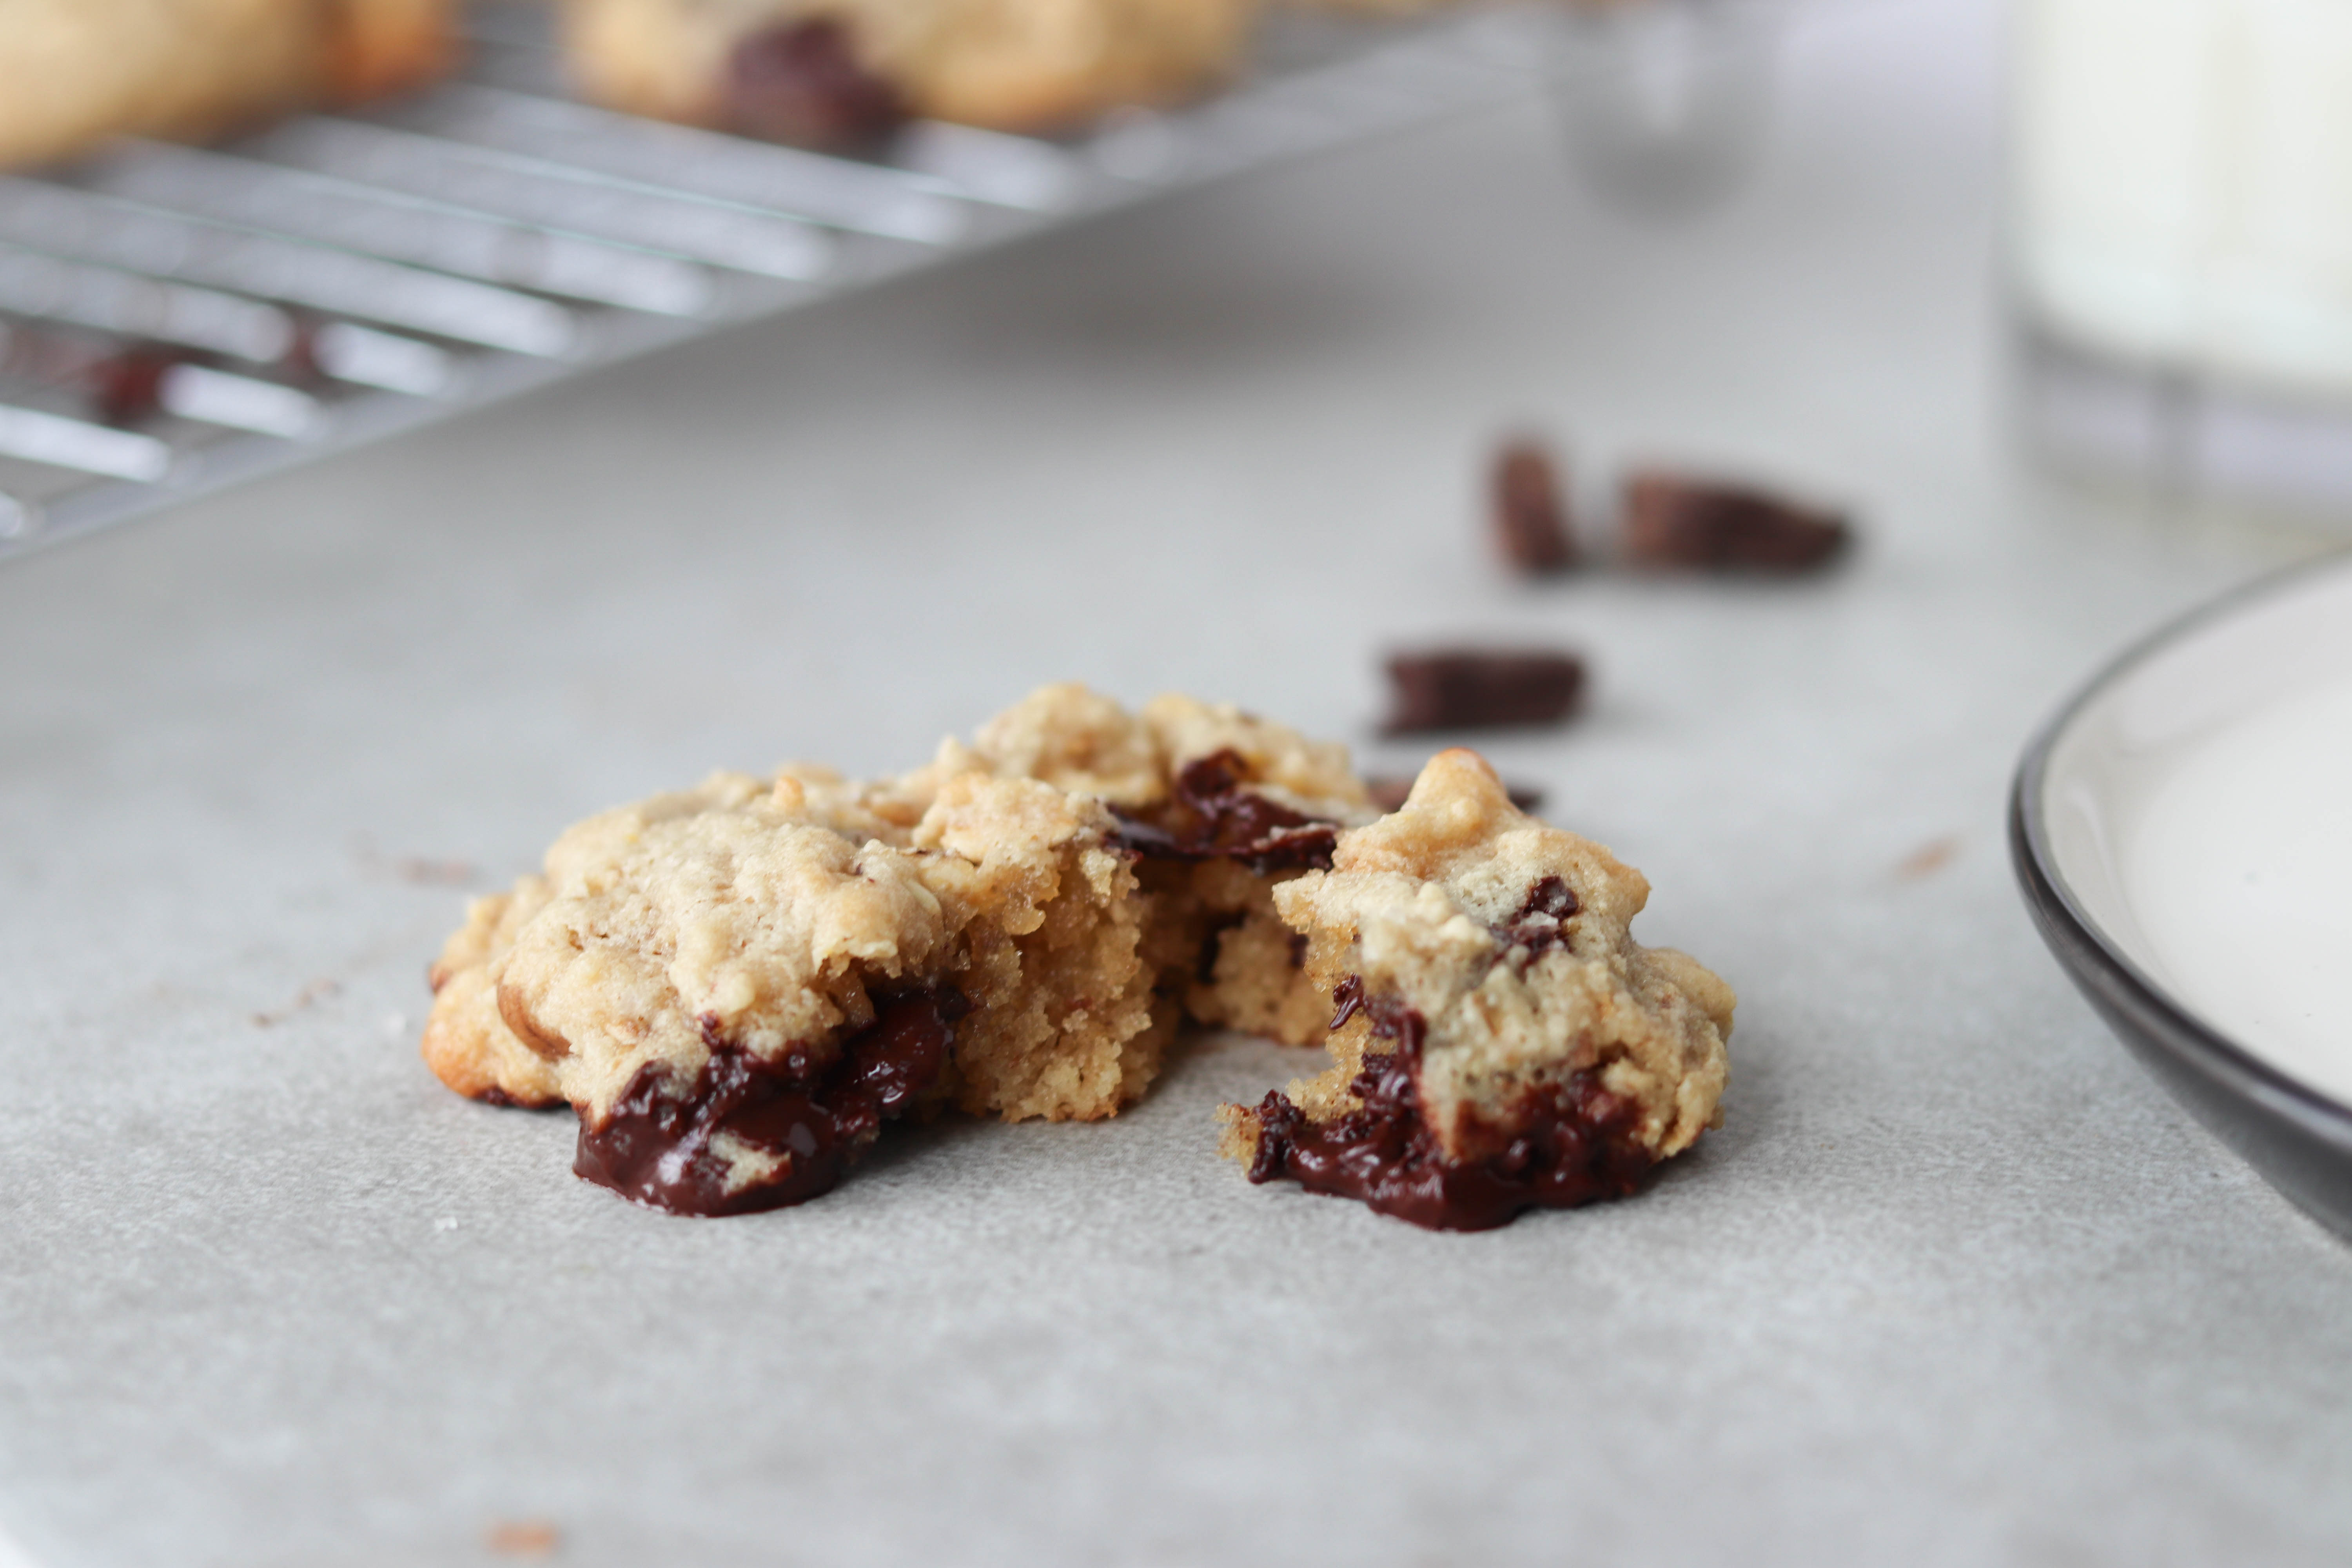 These oatmeal chocolate chip cookies are soft, chewy and melt-in-your-mouth. Made with almond flour, these cookies make for a healthier option to white flour | Mealswithmaggie.com